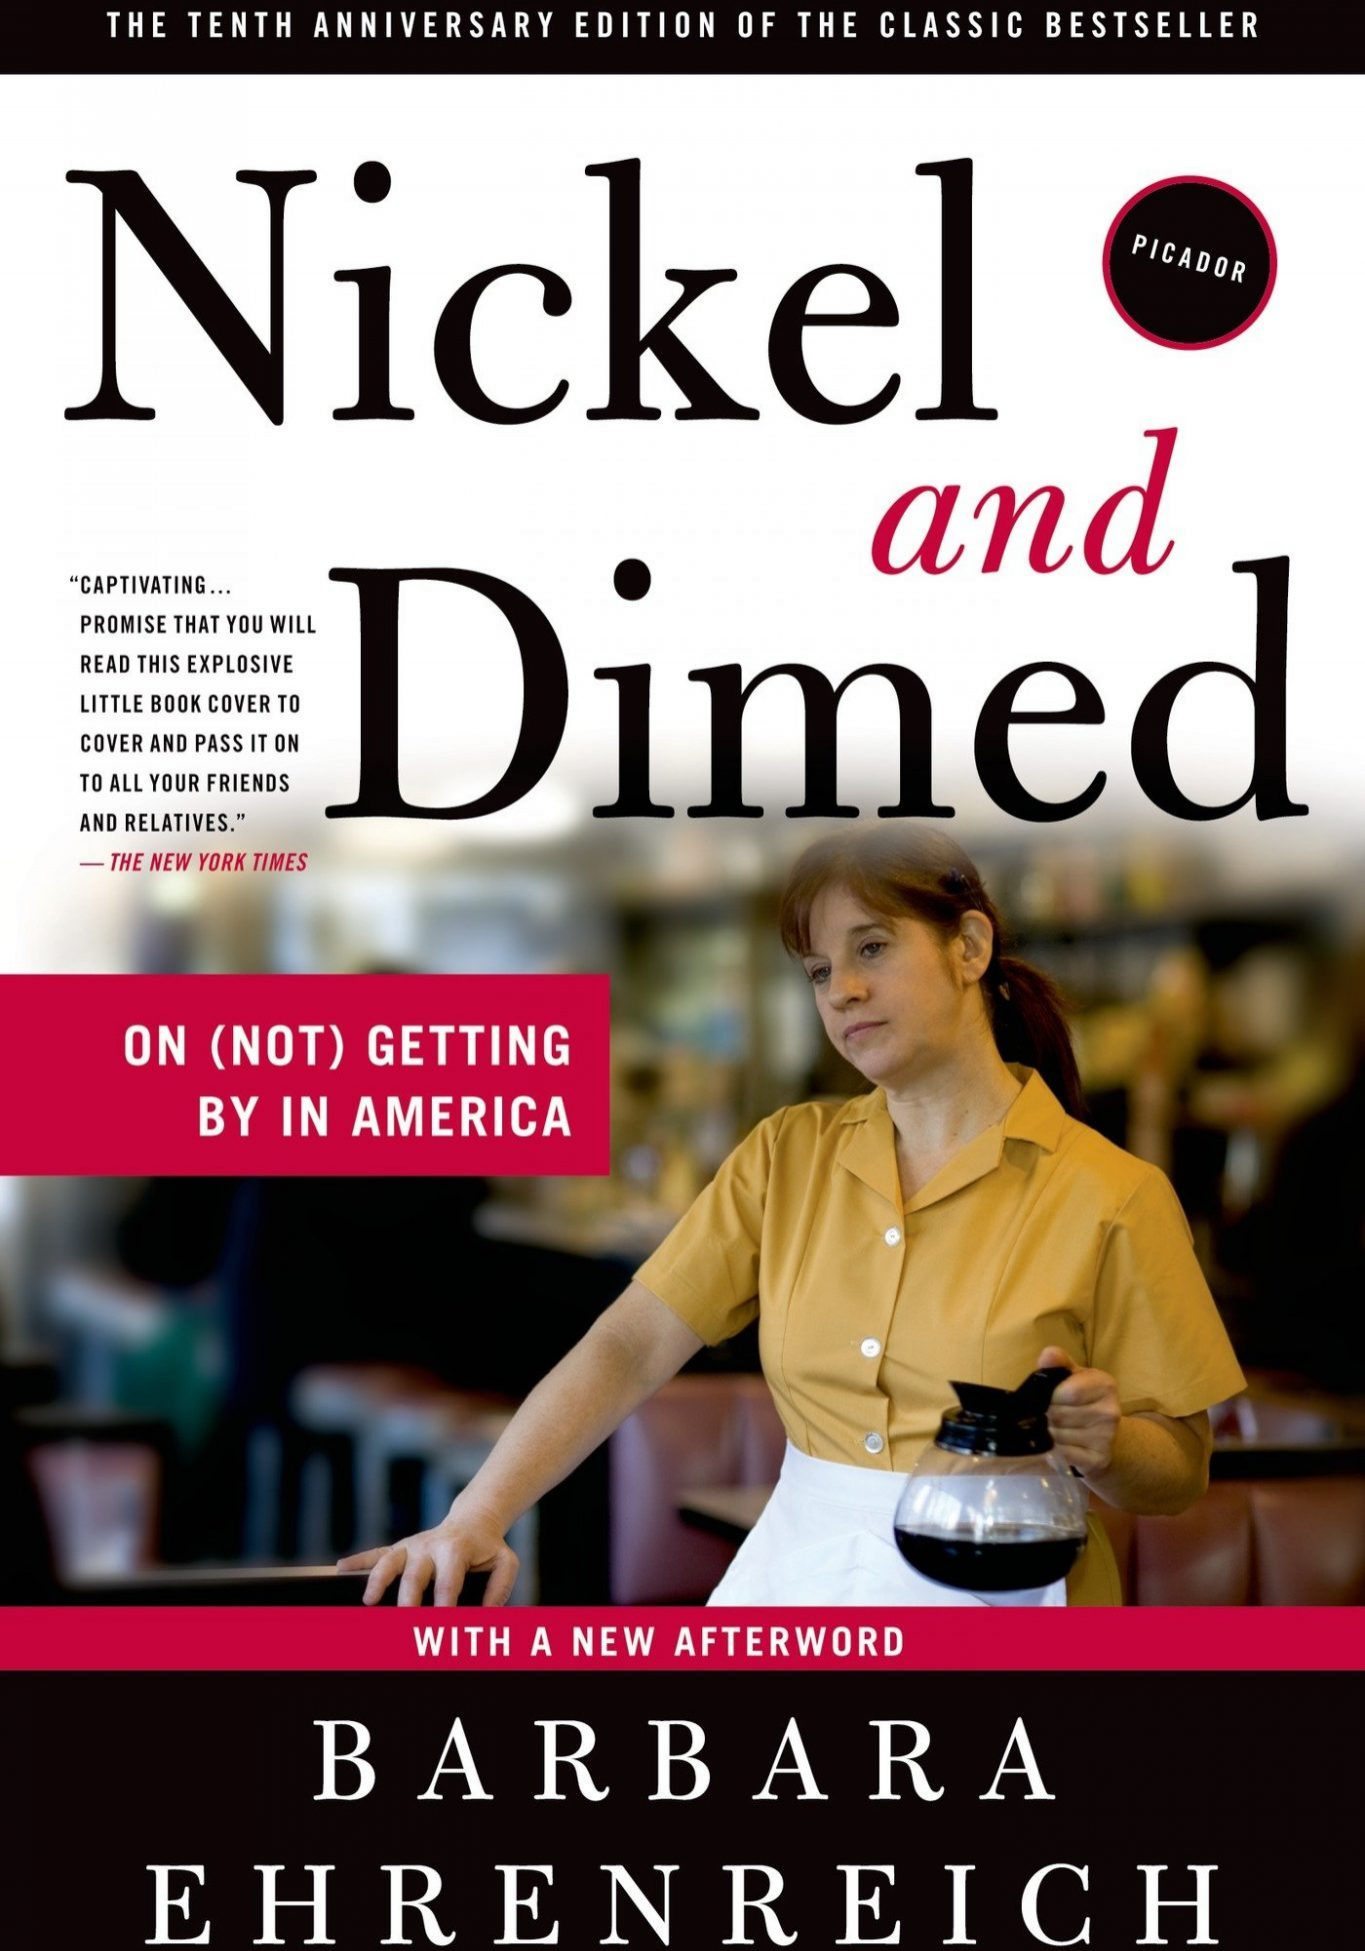 Ehrenreich - Nickel and Dimed